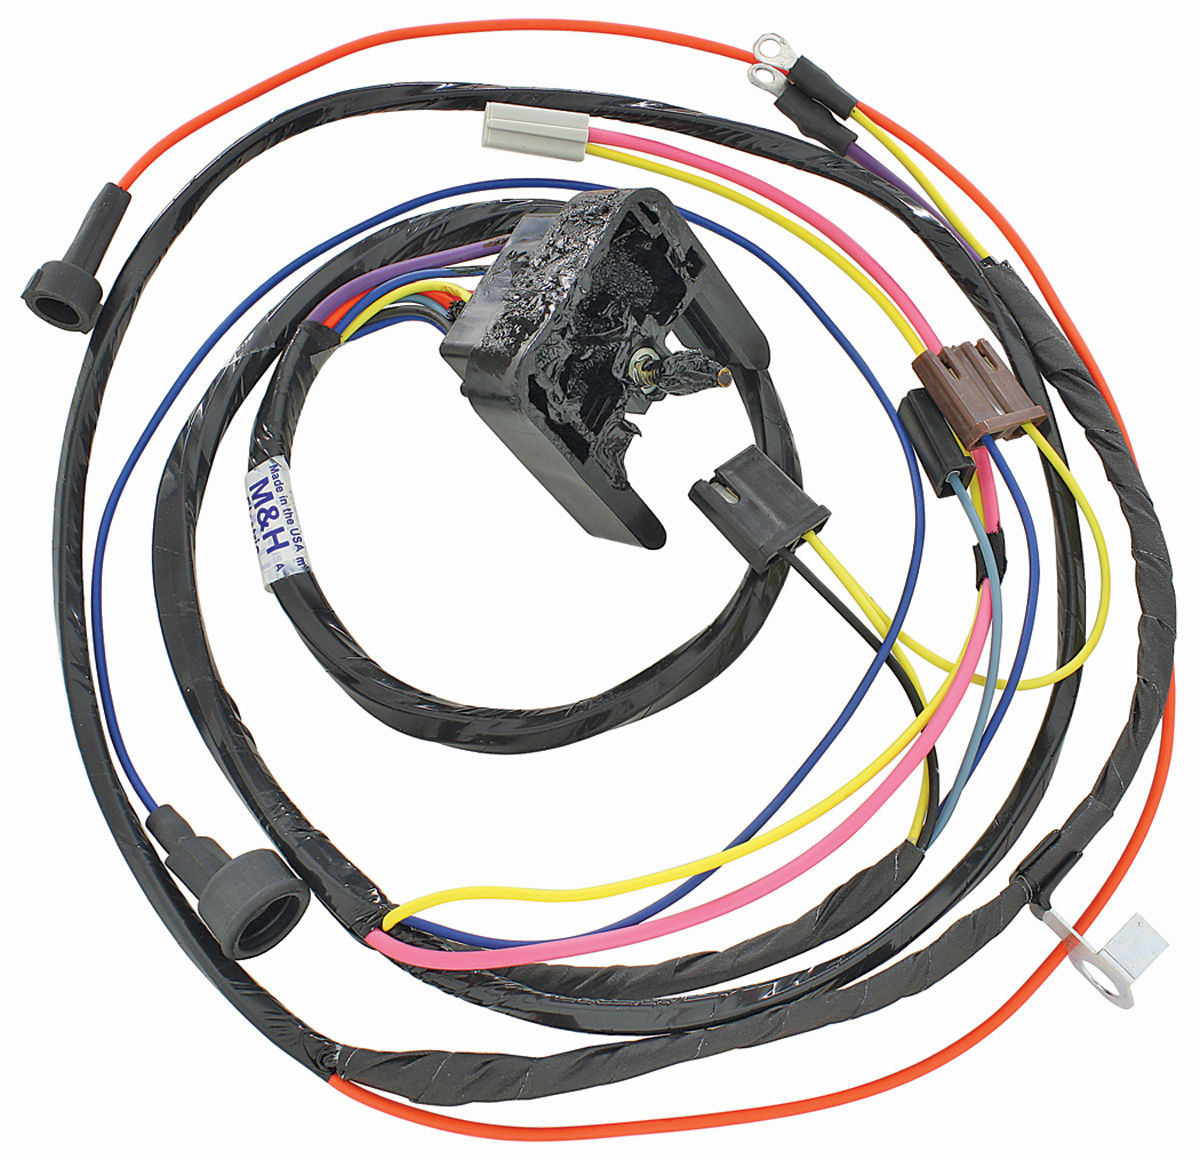 38947 lrg?v=102520130818 m&h 1968 69 chevelle engine harness 396 hei w warning lights 1971 El Camino Wiring Harness at mifinder.co